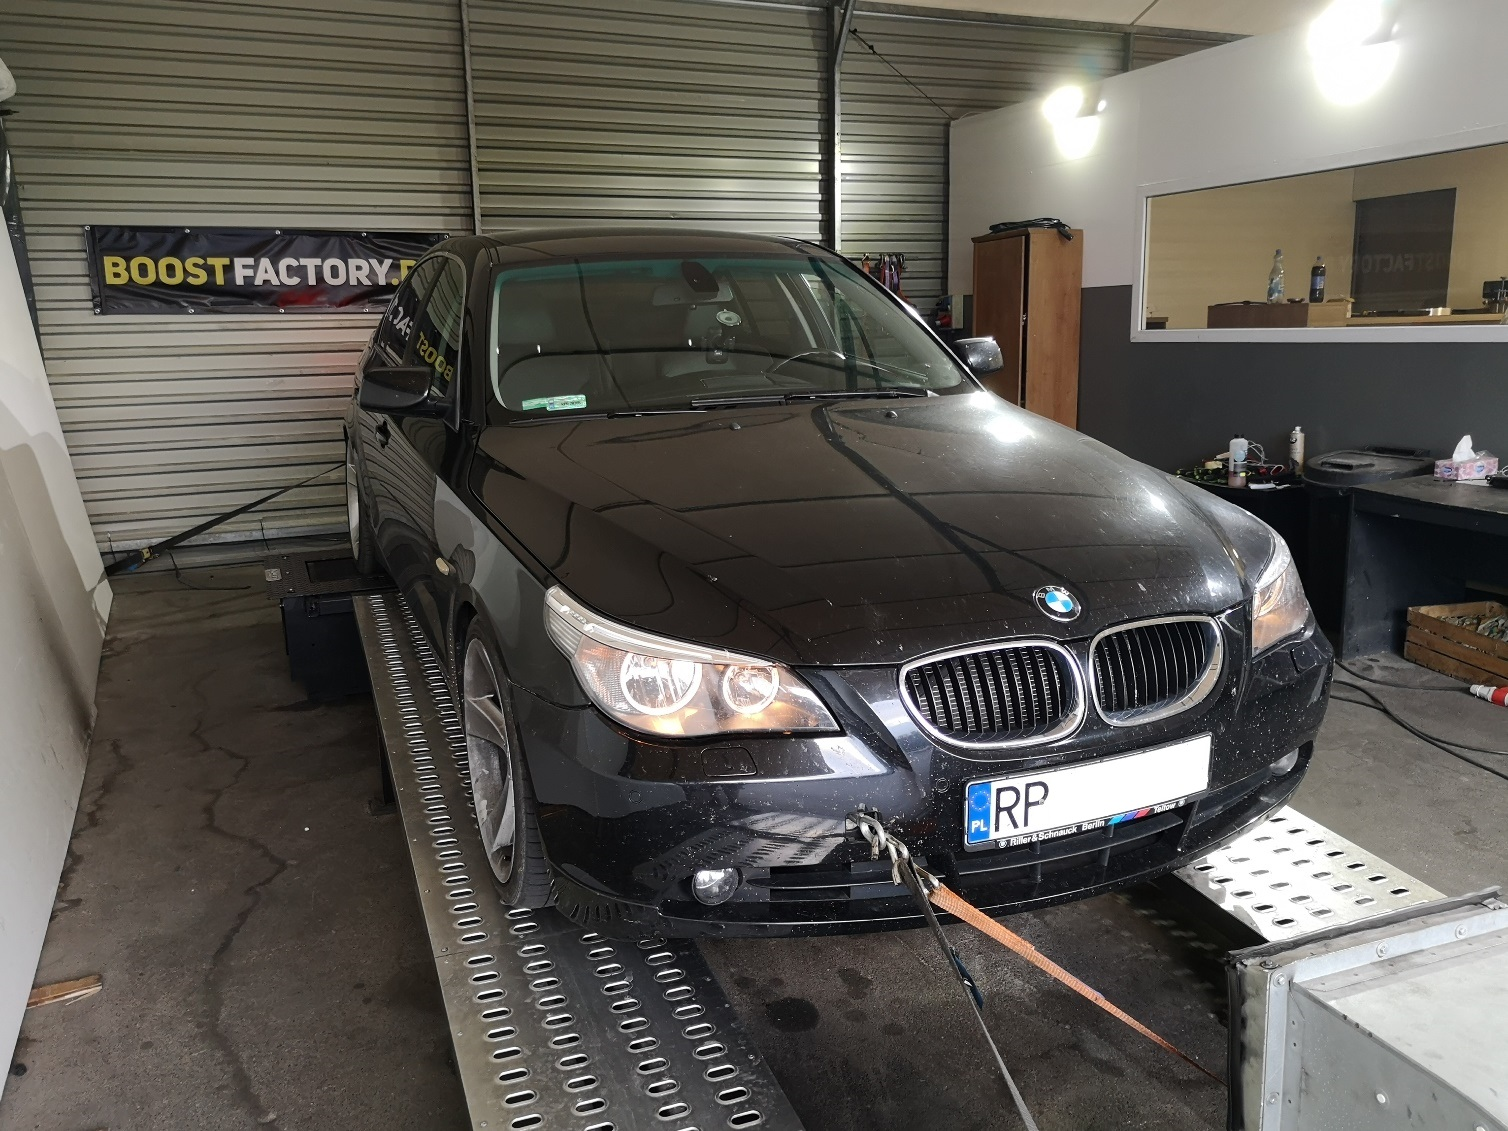 BMW E60 520d 163KM >> 204KM 417Nm